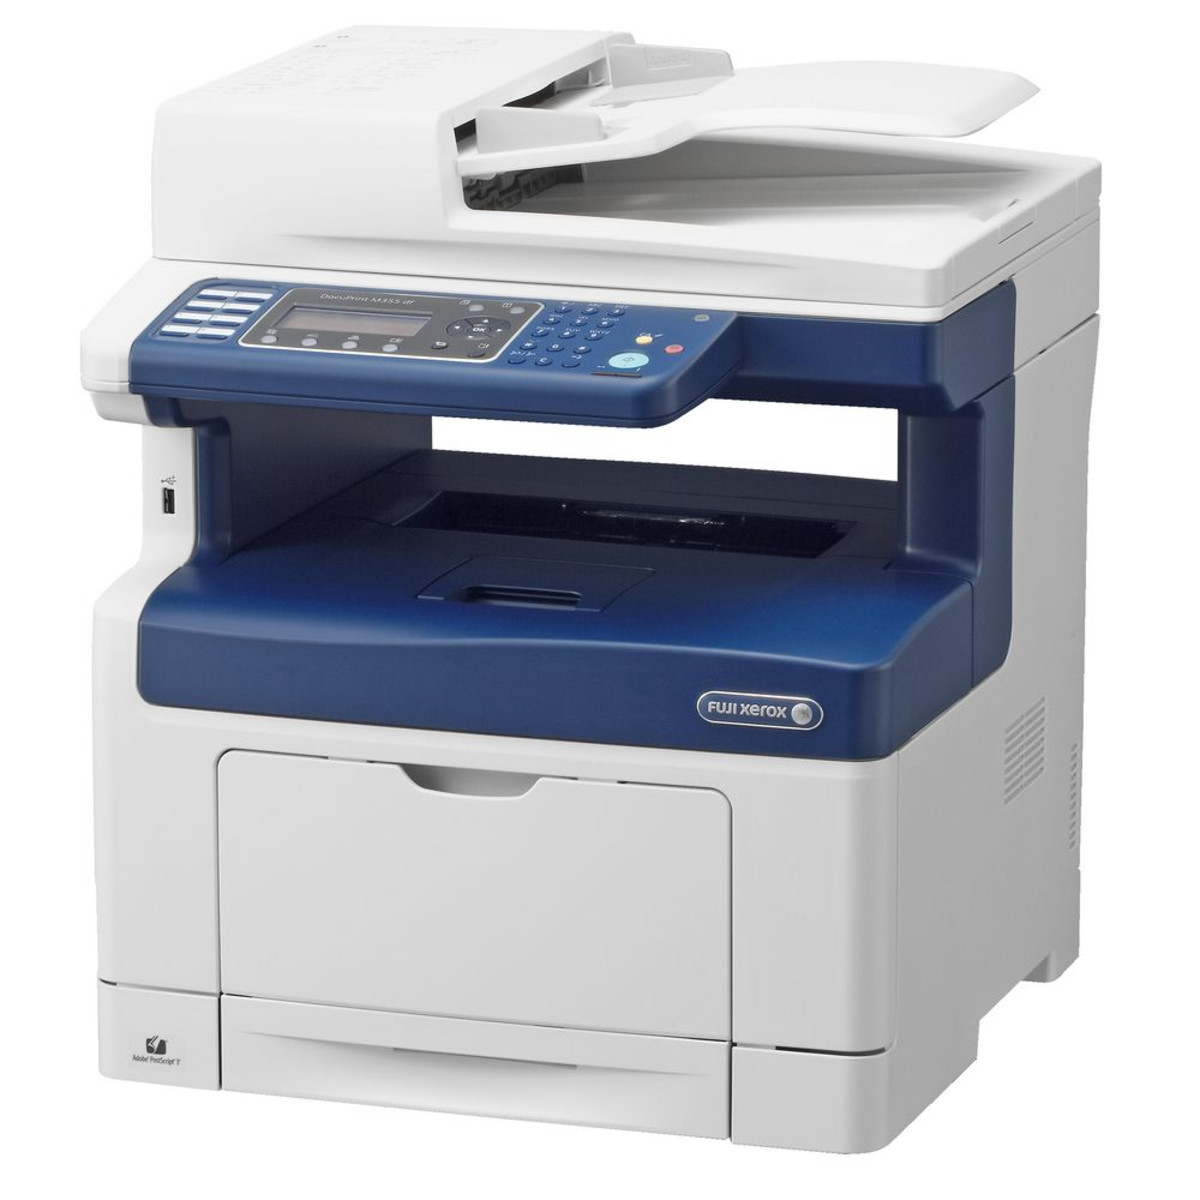 Xerox DocuPrint M355DF Laser Printer